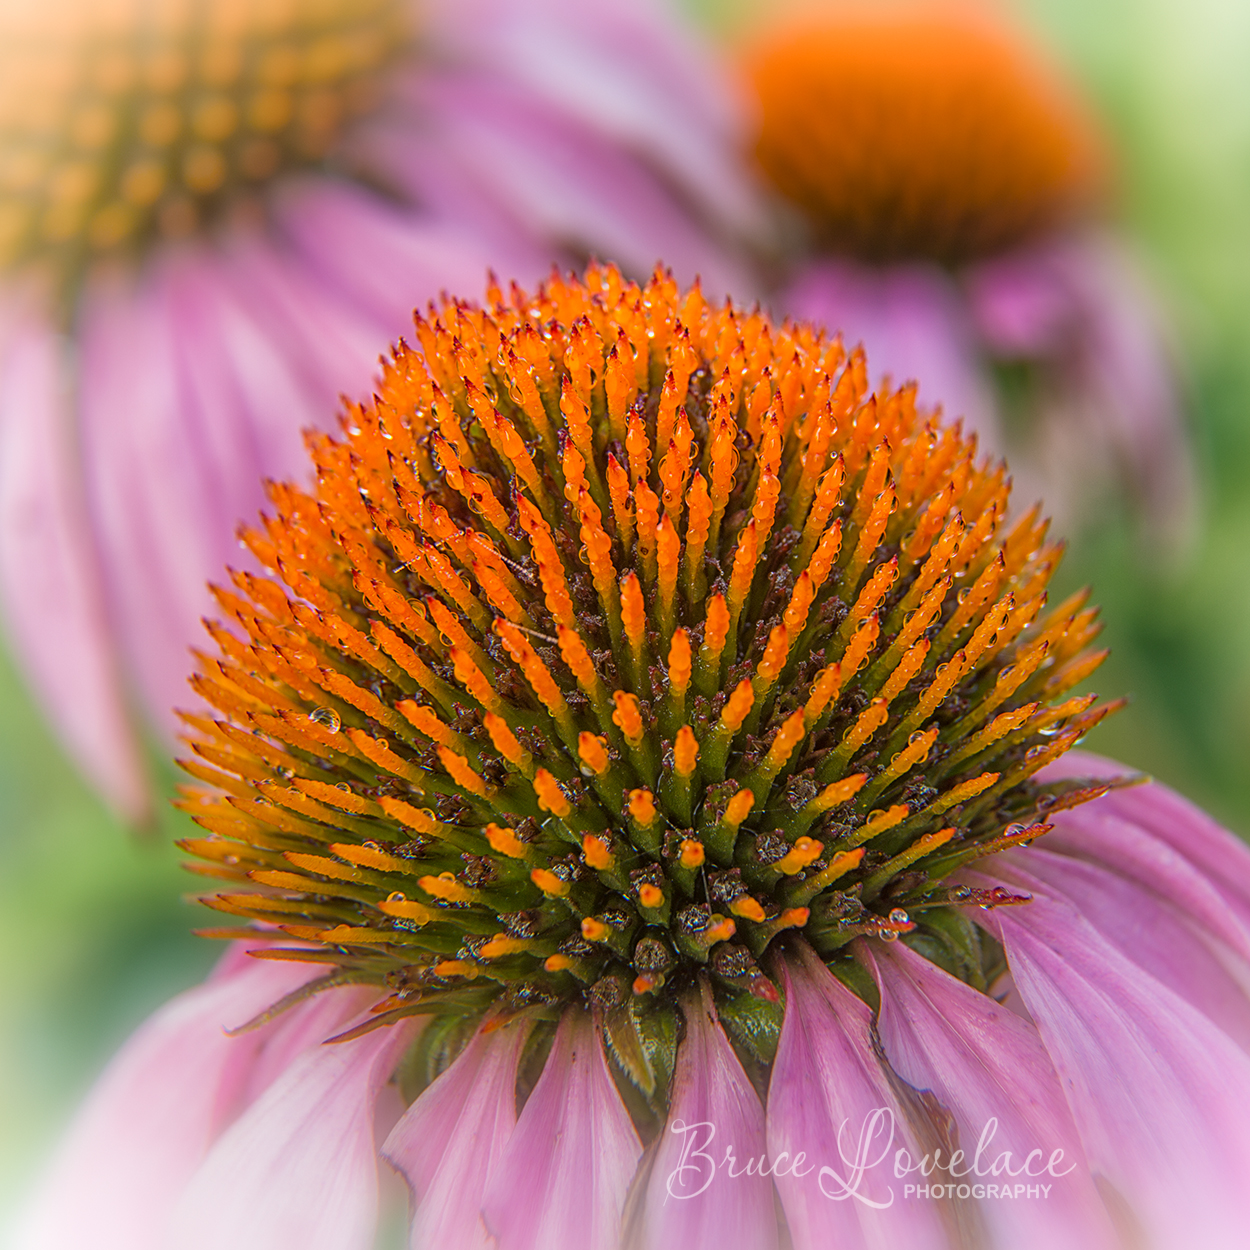 Flower photo with extension tubes